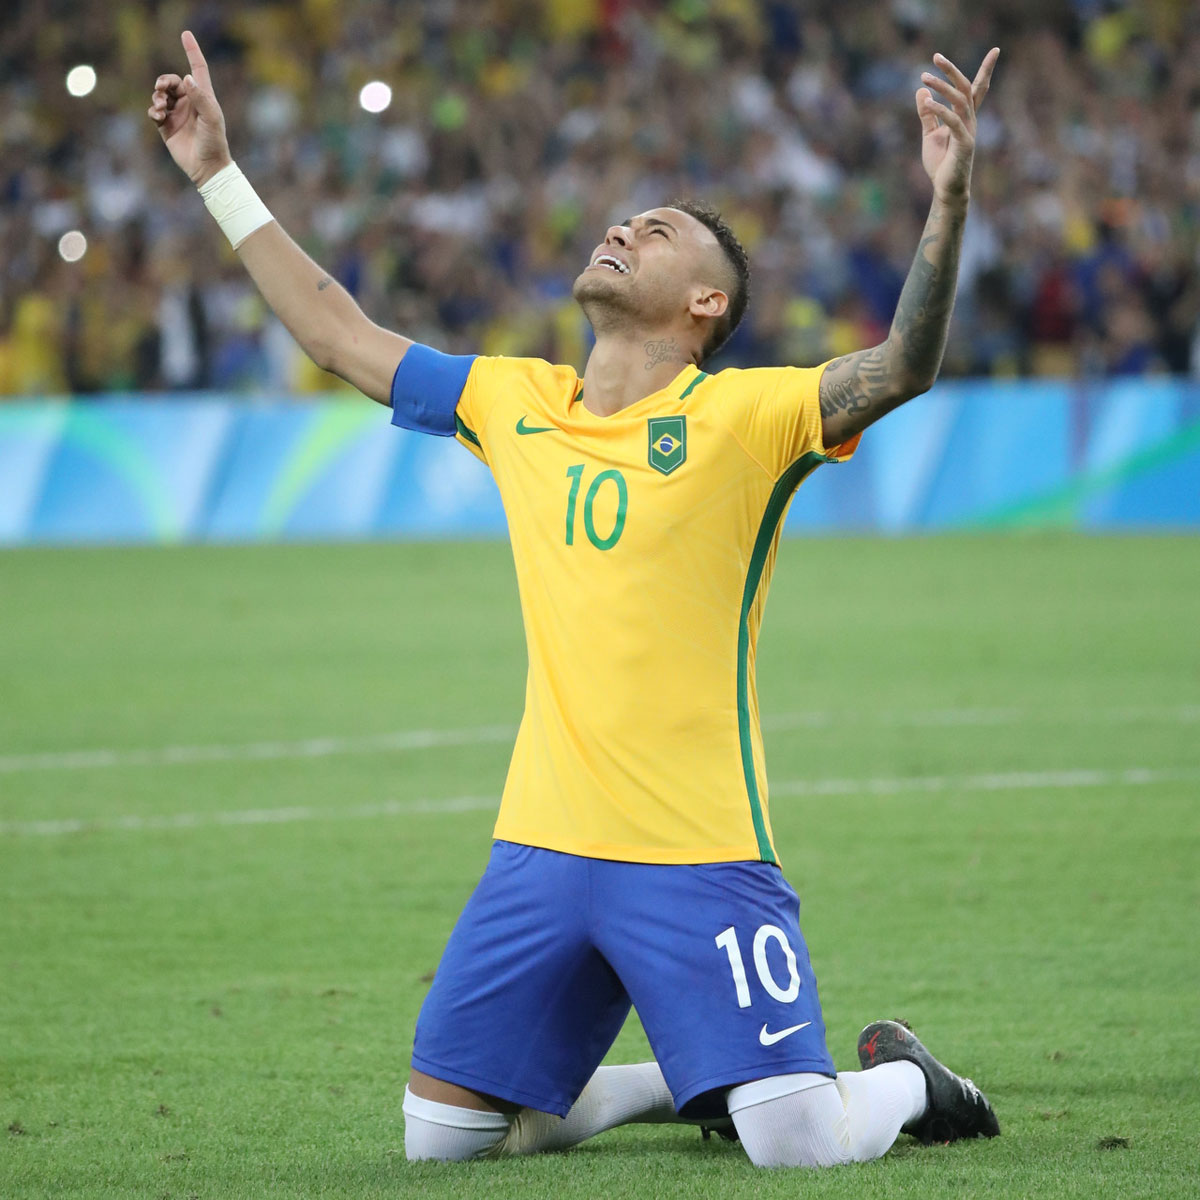 Neymar celebrates after the gold-medal-clinching kick in the 2016 Olympics